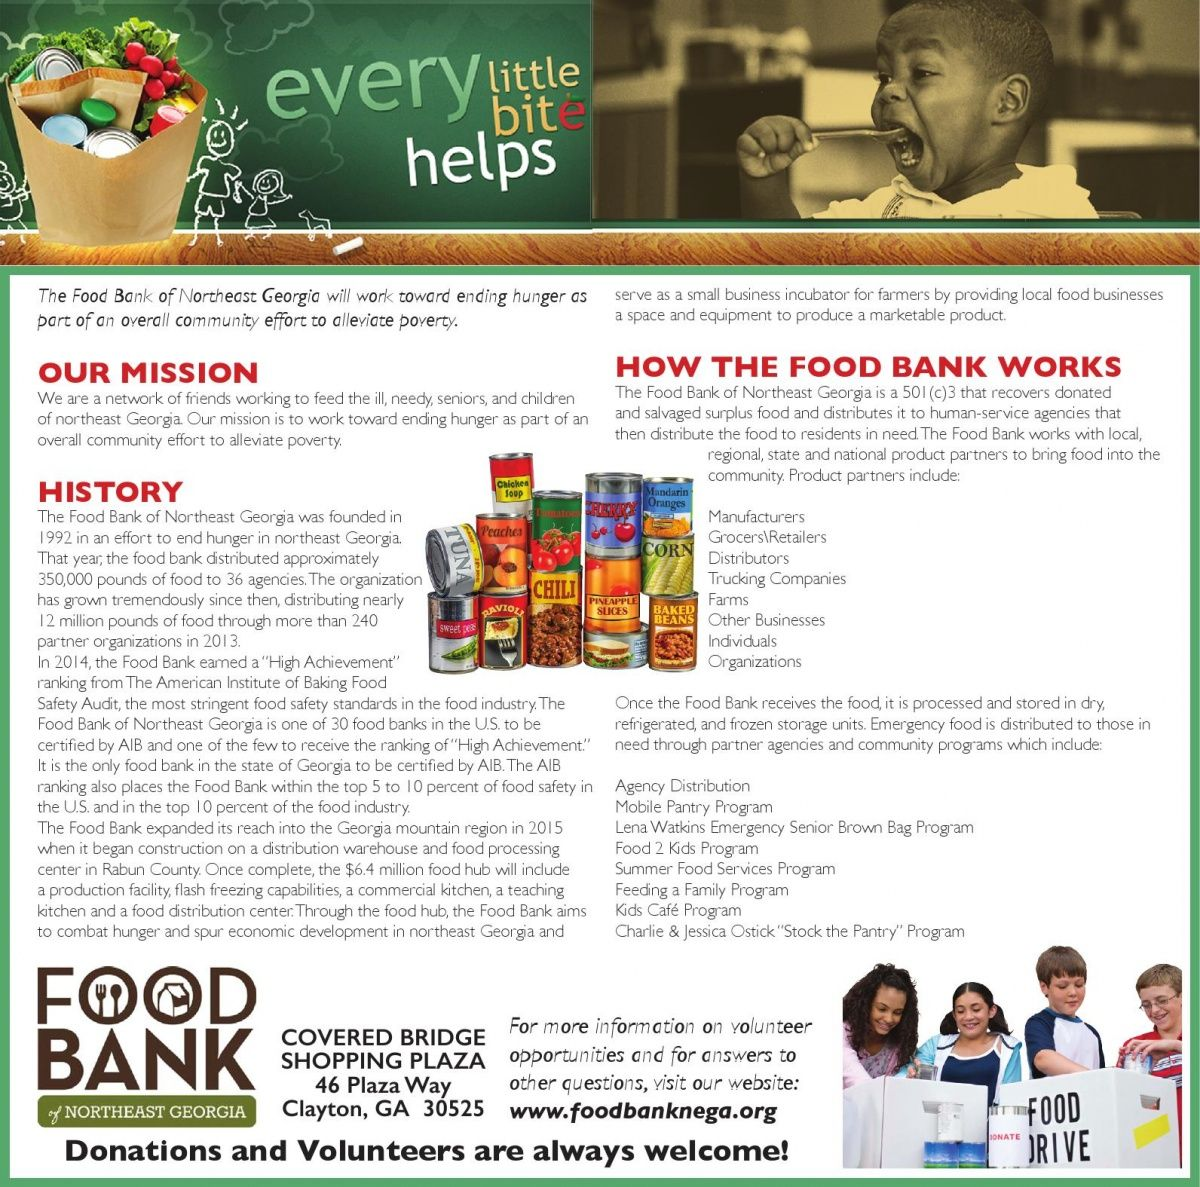 every little bite helps The Food Bank of Northeast